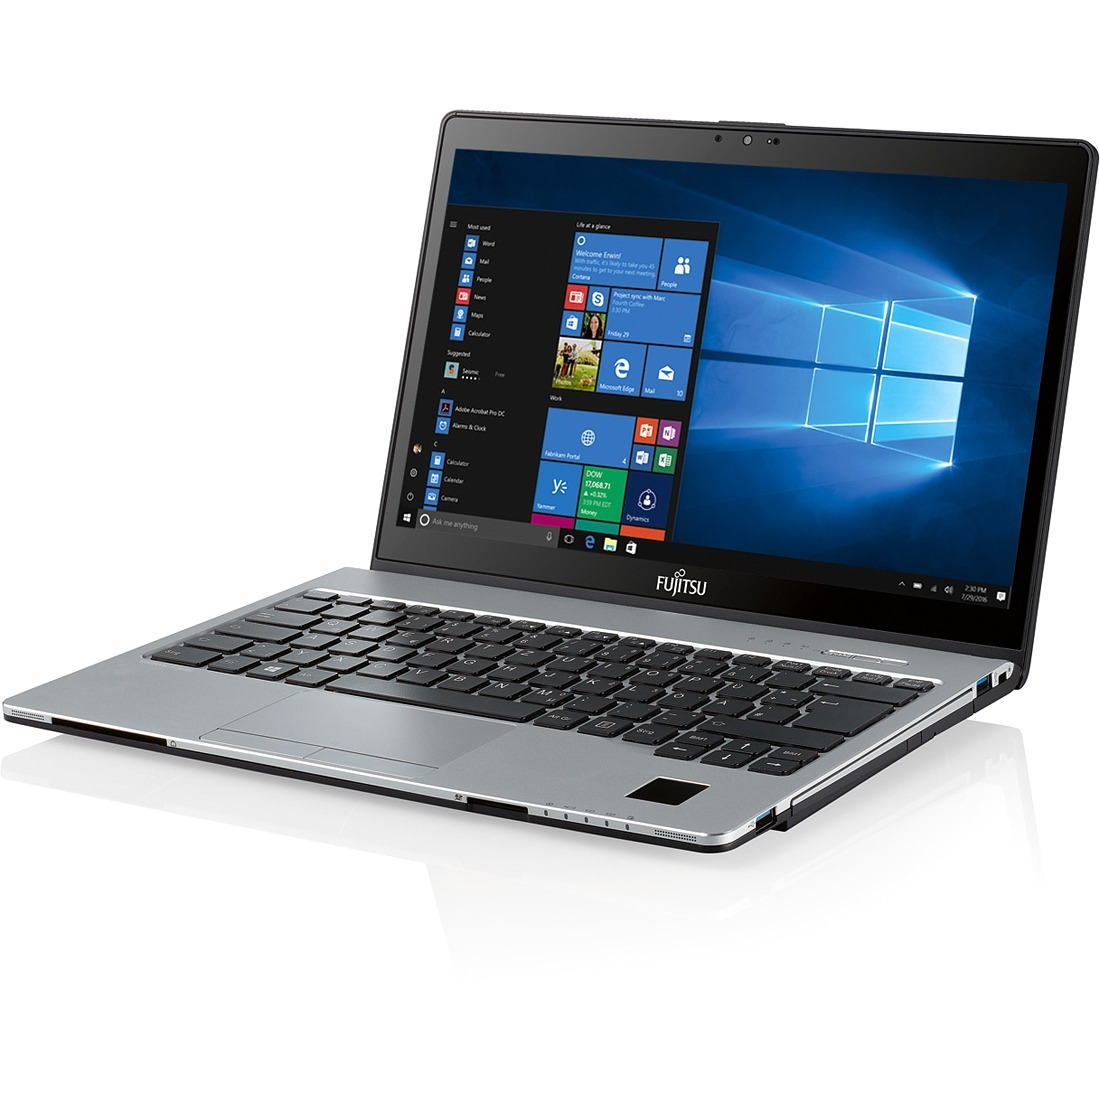 Fujitsu LIFEBOOK S937 33.8 cm 13.3inch Touchscreen LCD Notebook - Intel Core i5 7th Gen i5-7300U Dual-core 2 Core 2.60 GHz - 8 GB DDR4 SDRAM - 256 GB SSD - Window